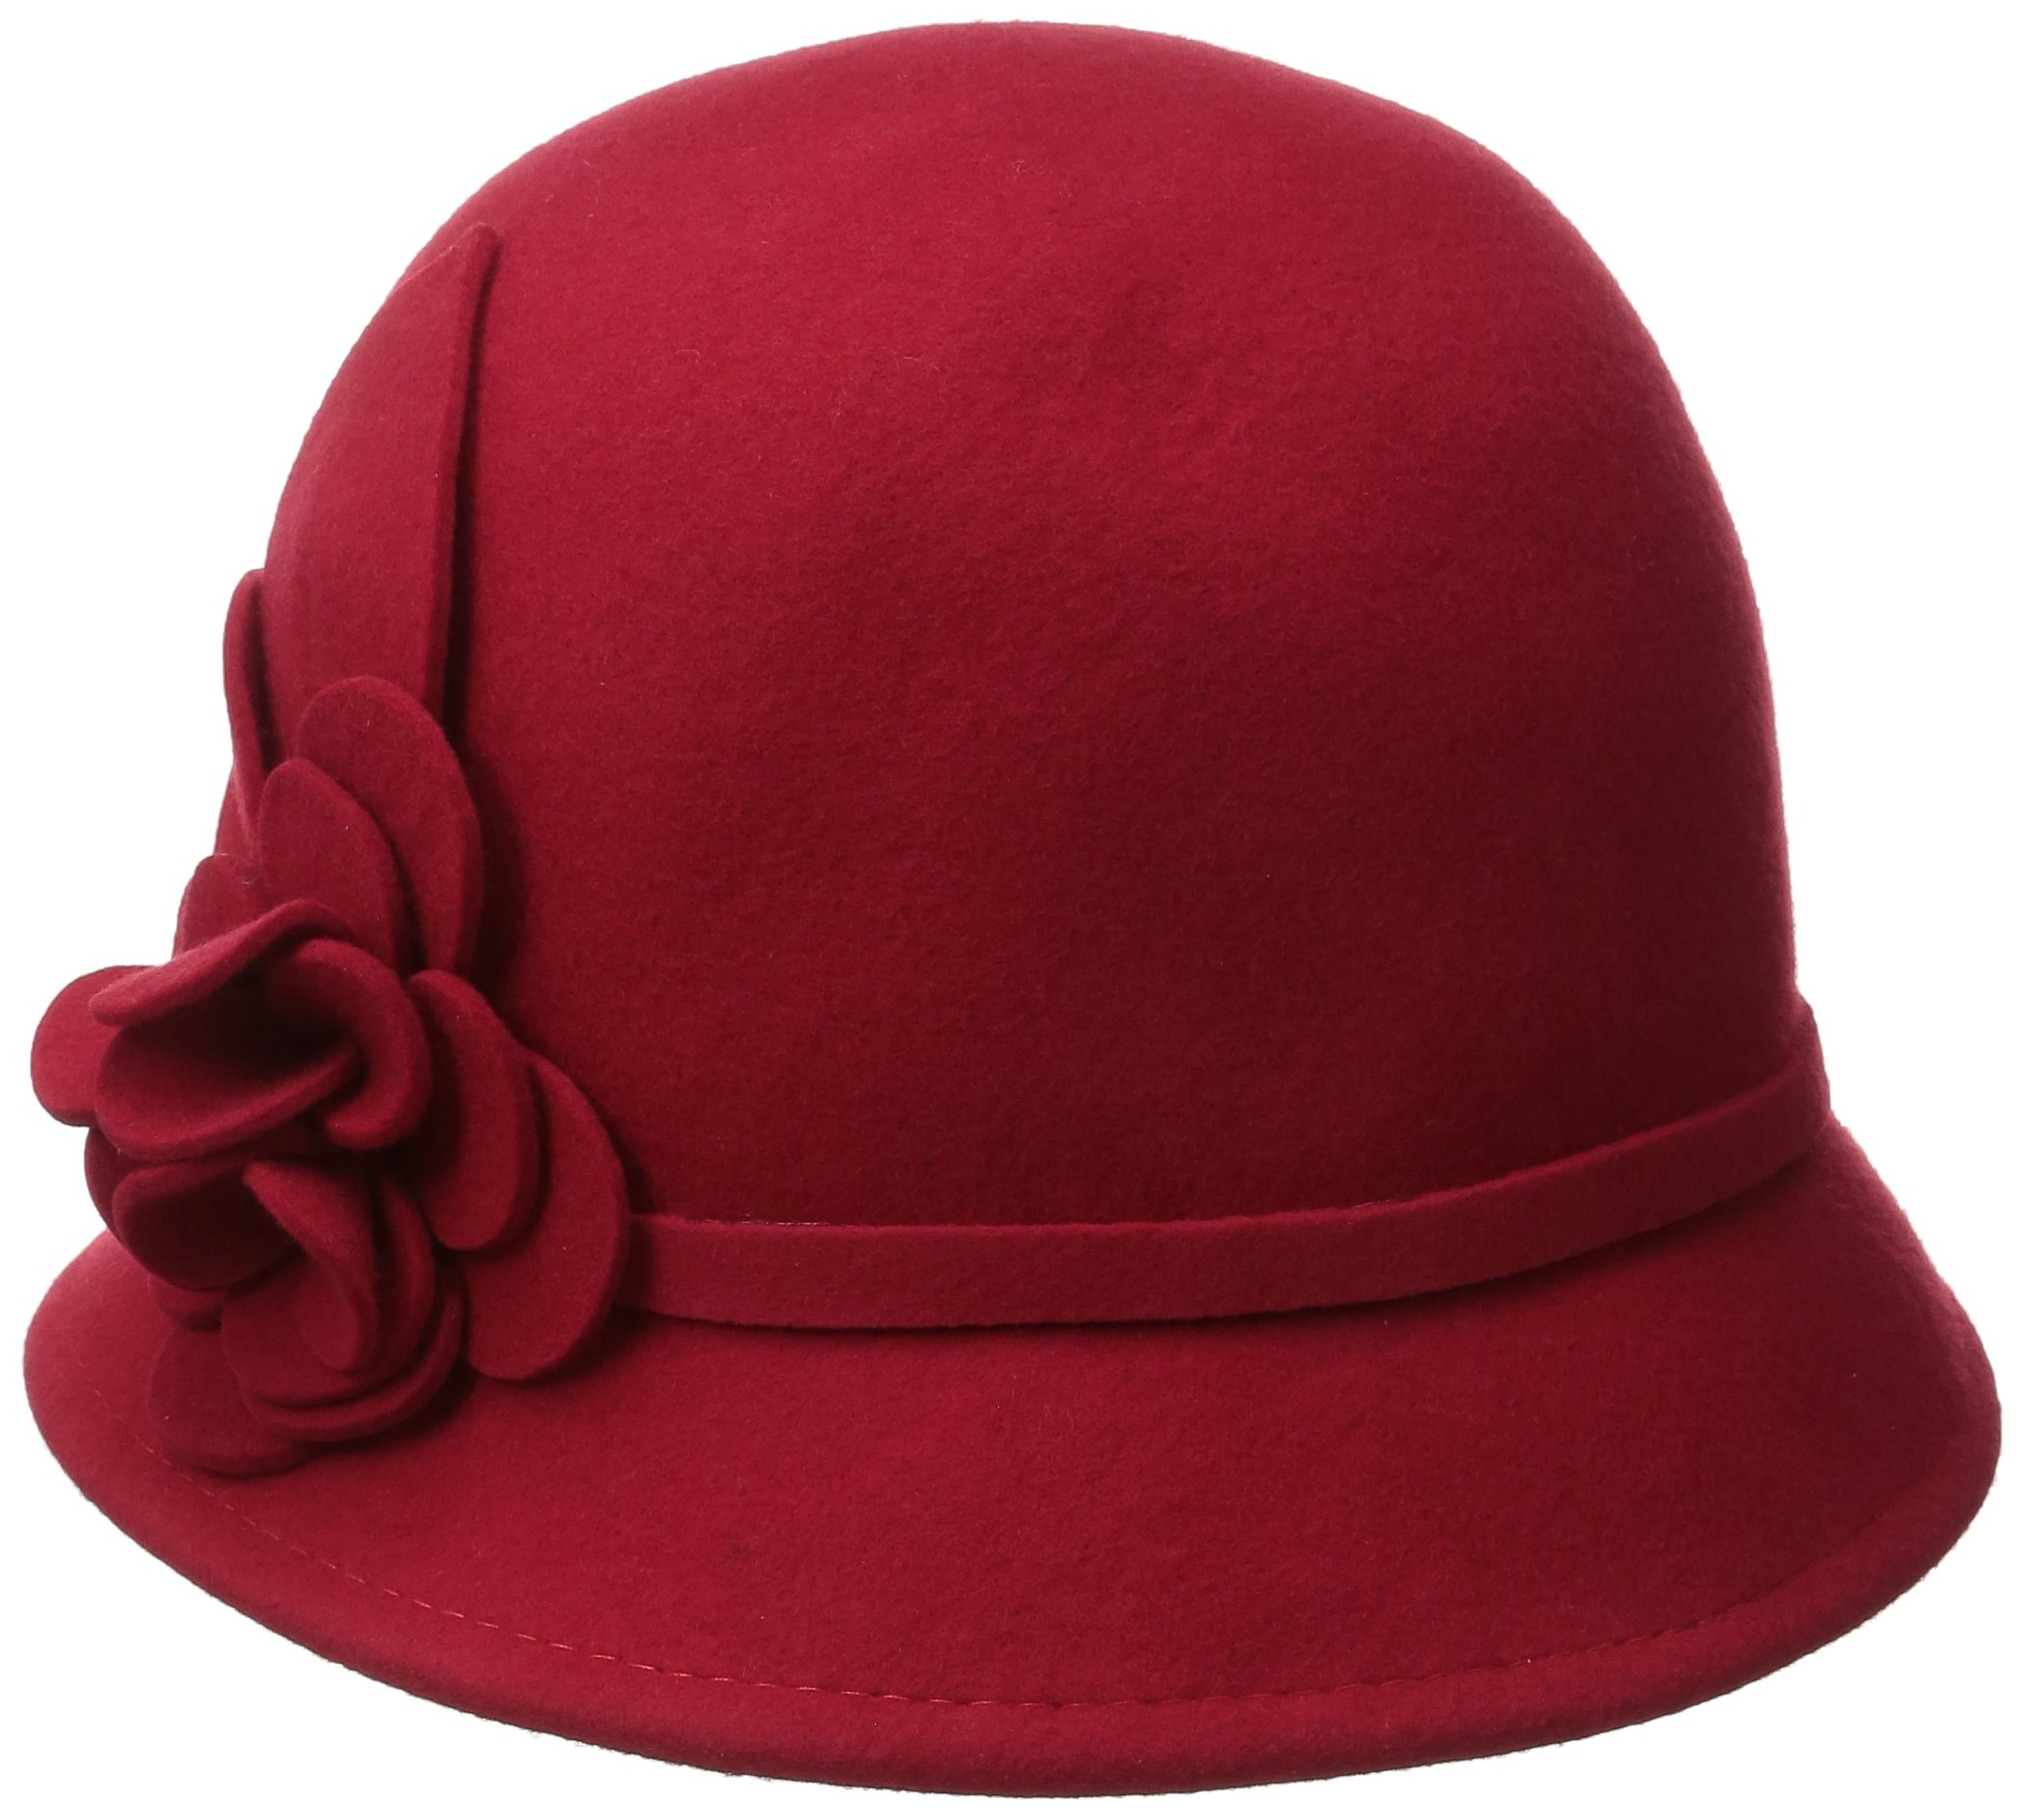 Nine West Women's Felt Cloche Hat with Self Flower, Red, One Size